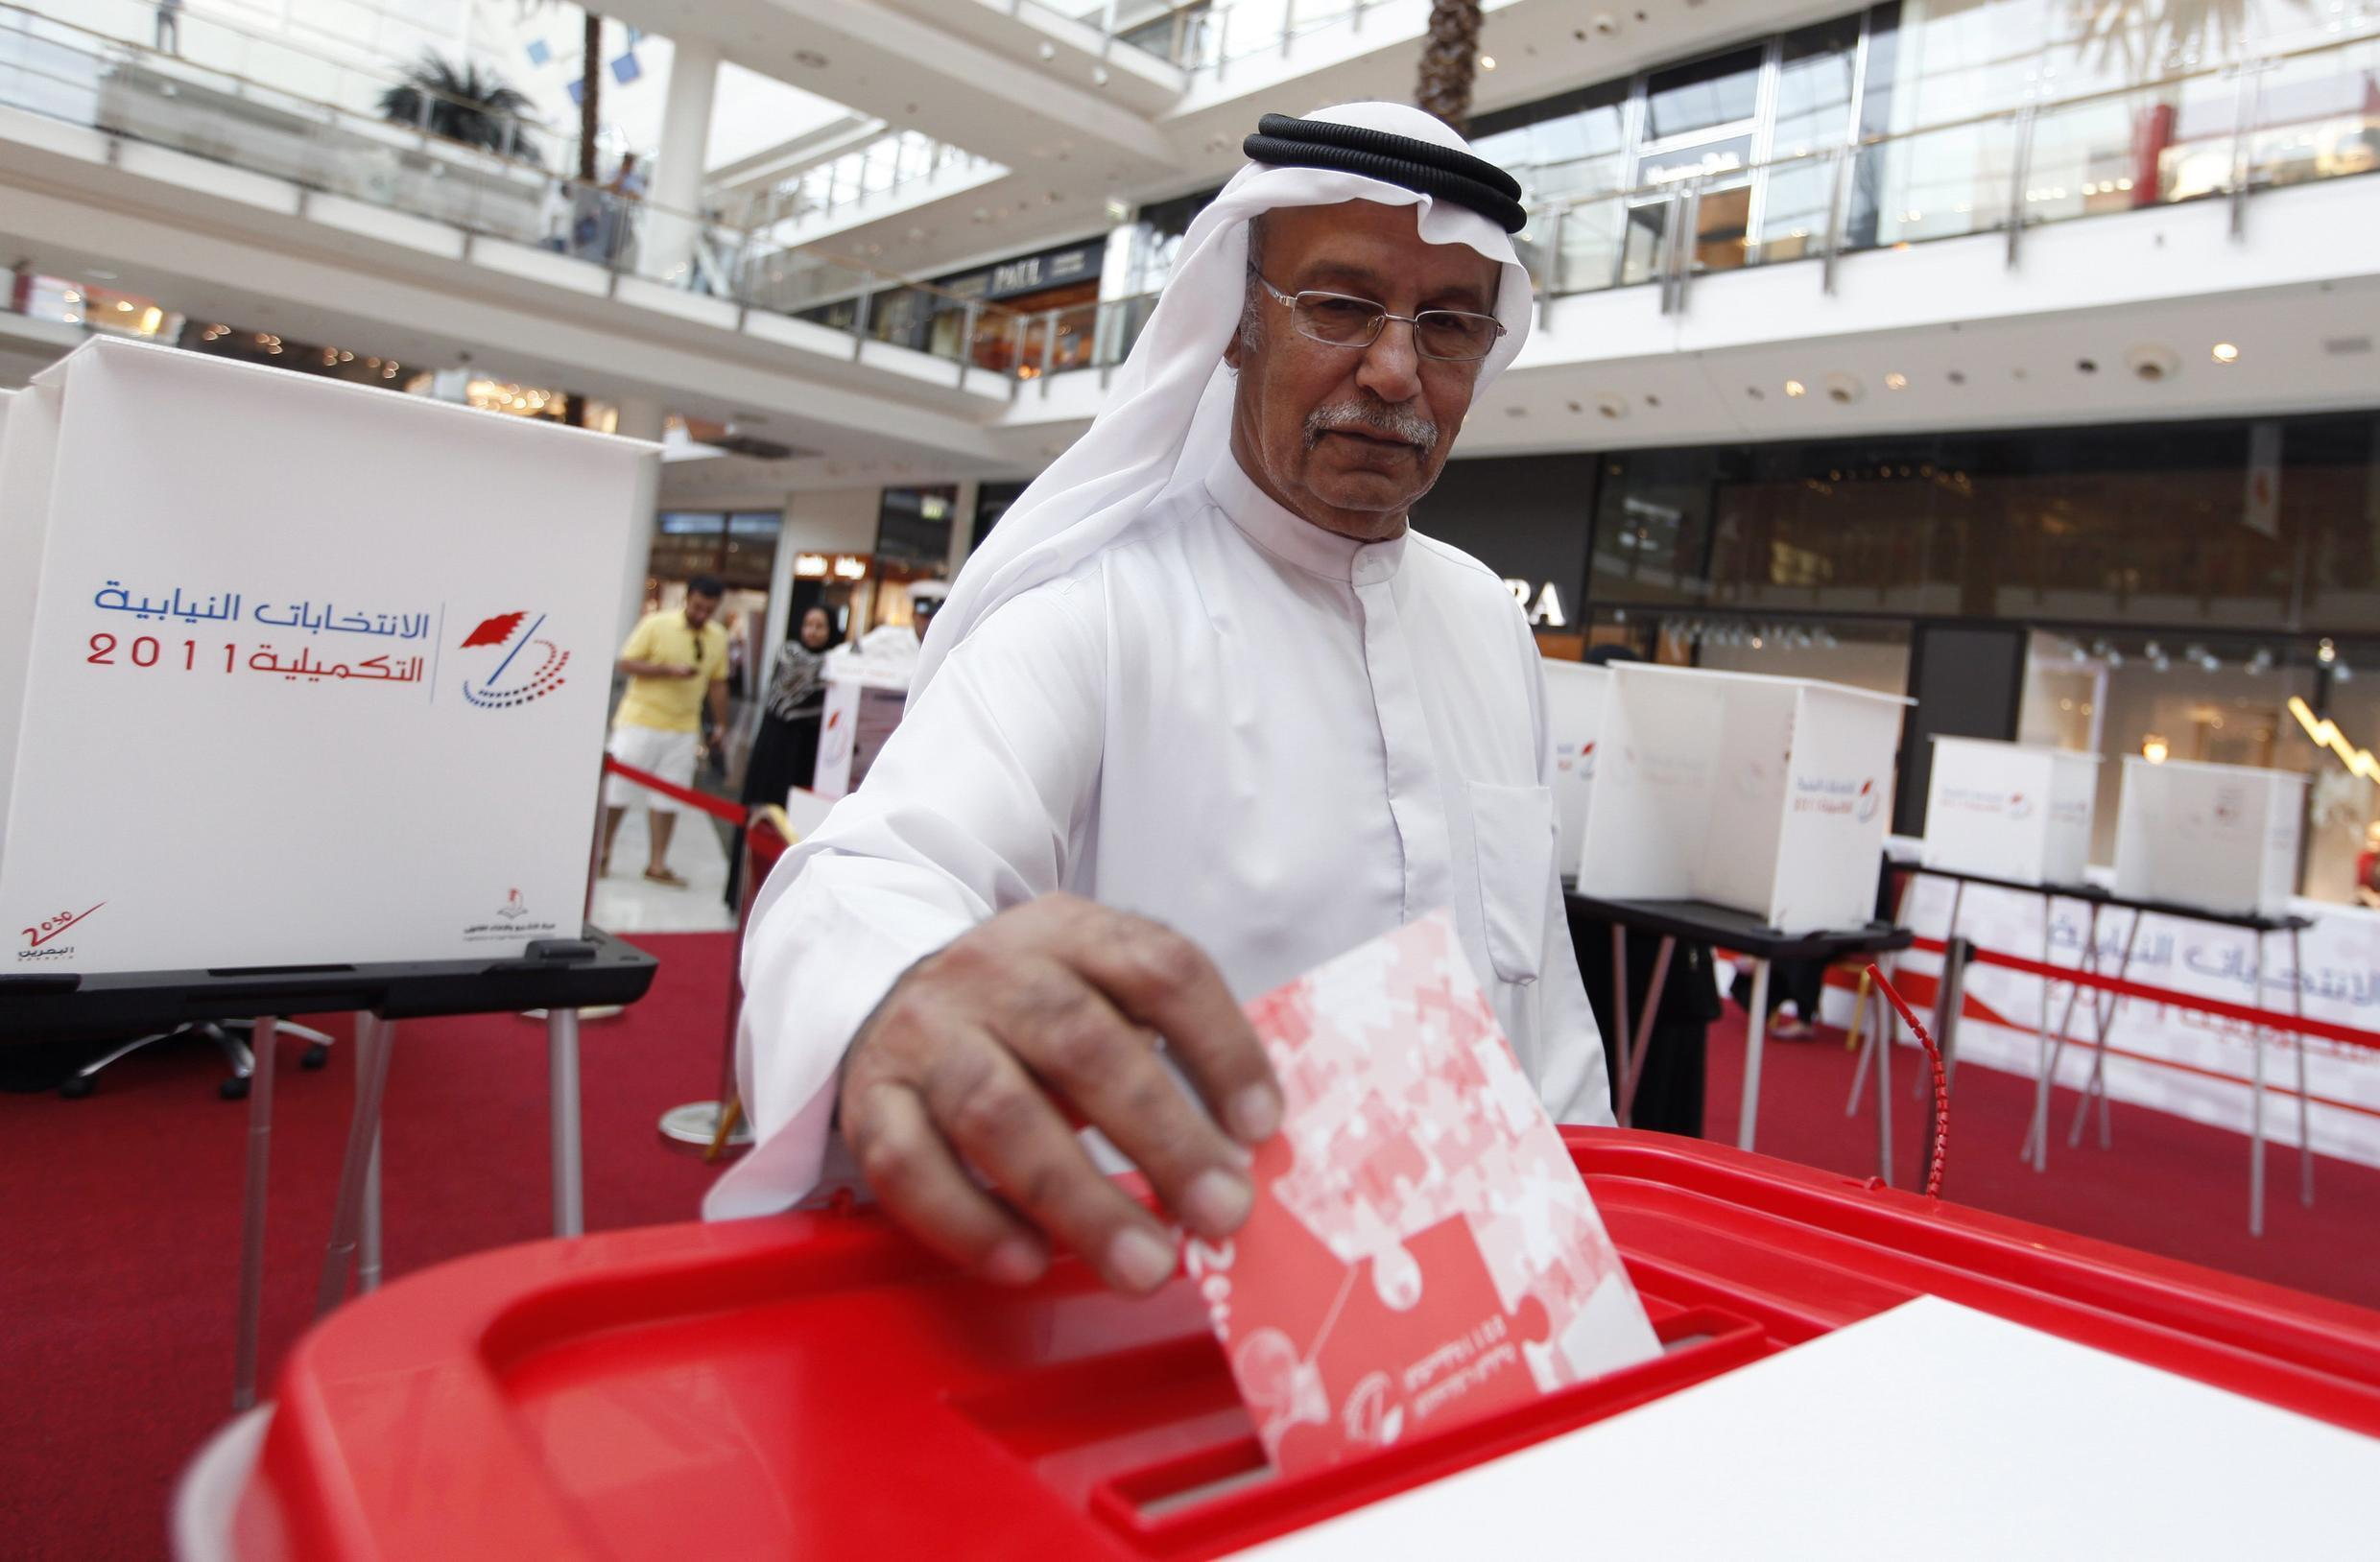 A Bahraini votes in Saturday's election, boycotted by the opposition